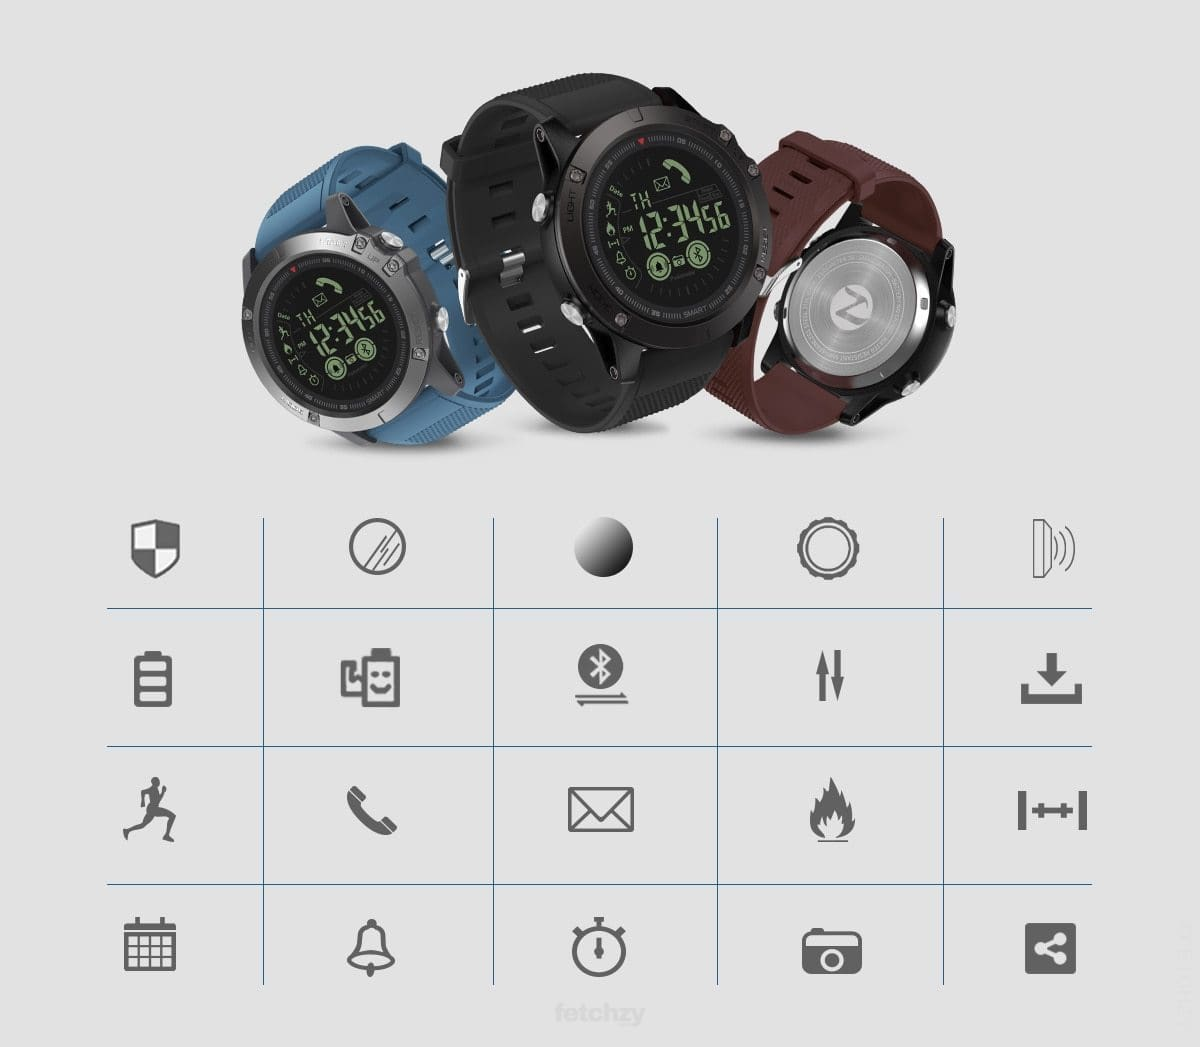 Sports Smartwatch (Rugged) With Power Standby For 33 Months Wow